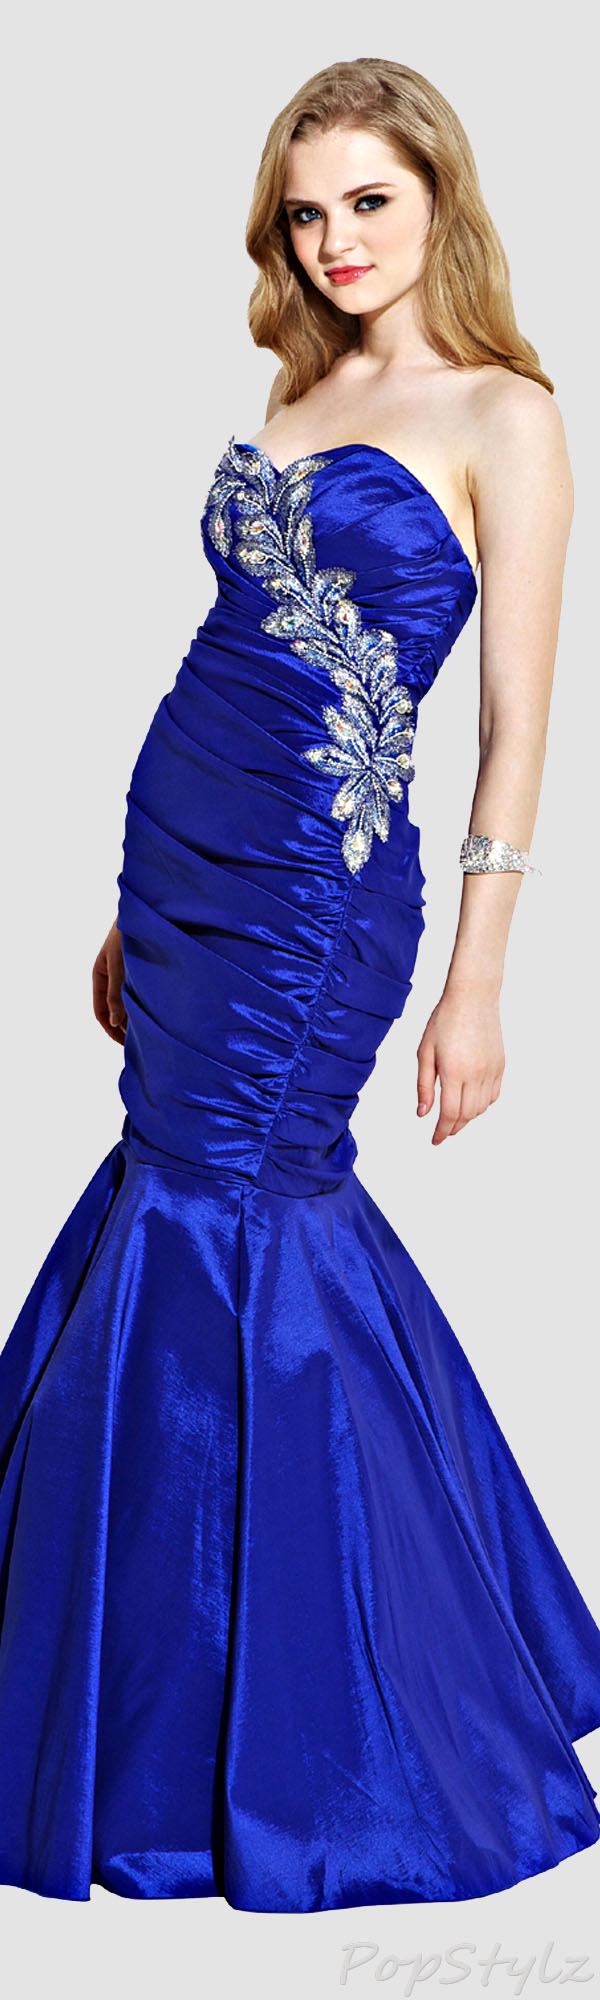 PacificPlex Taffeta Metallic Peacock Gown